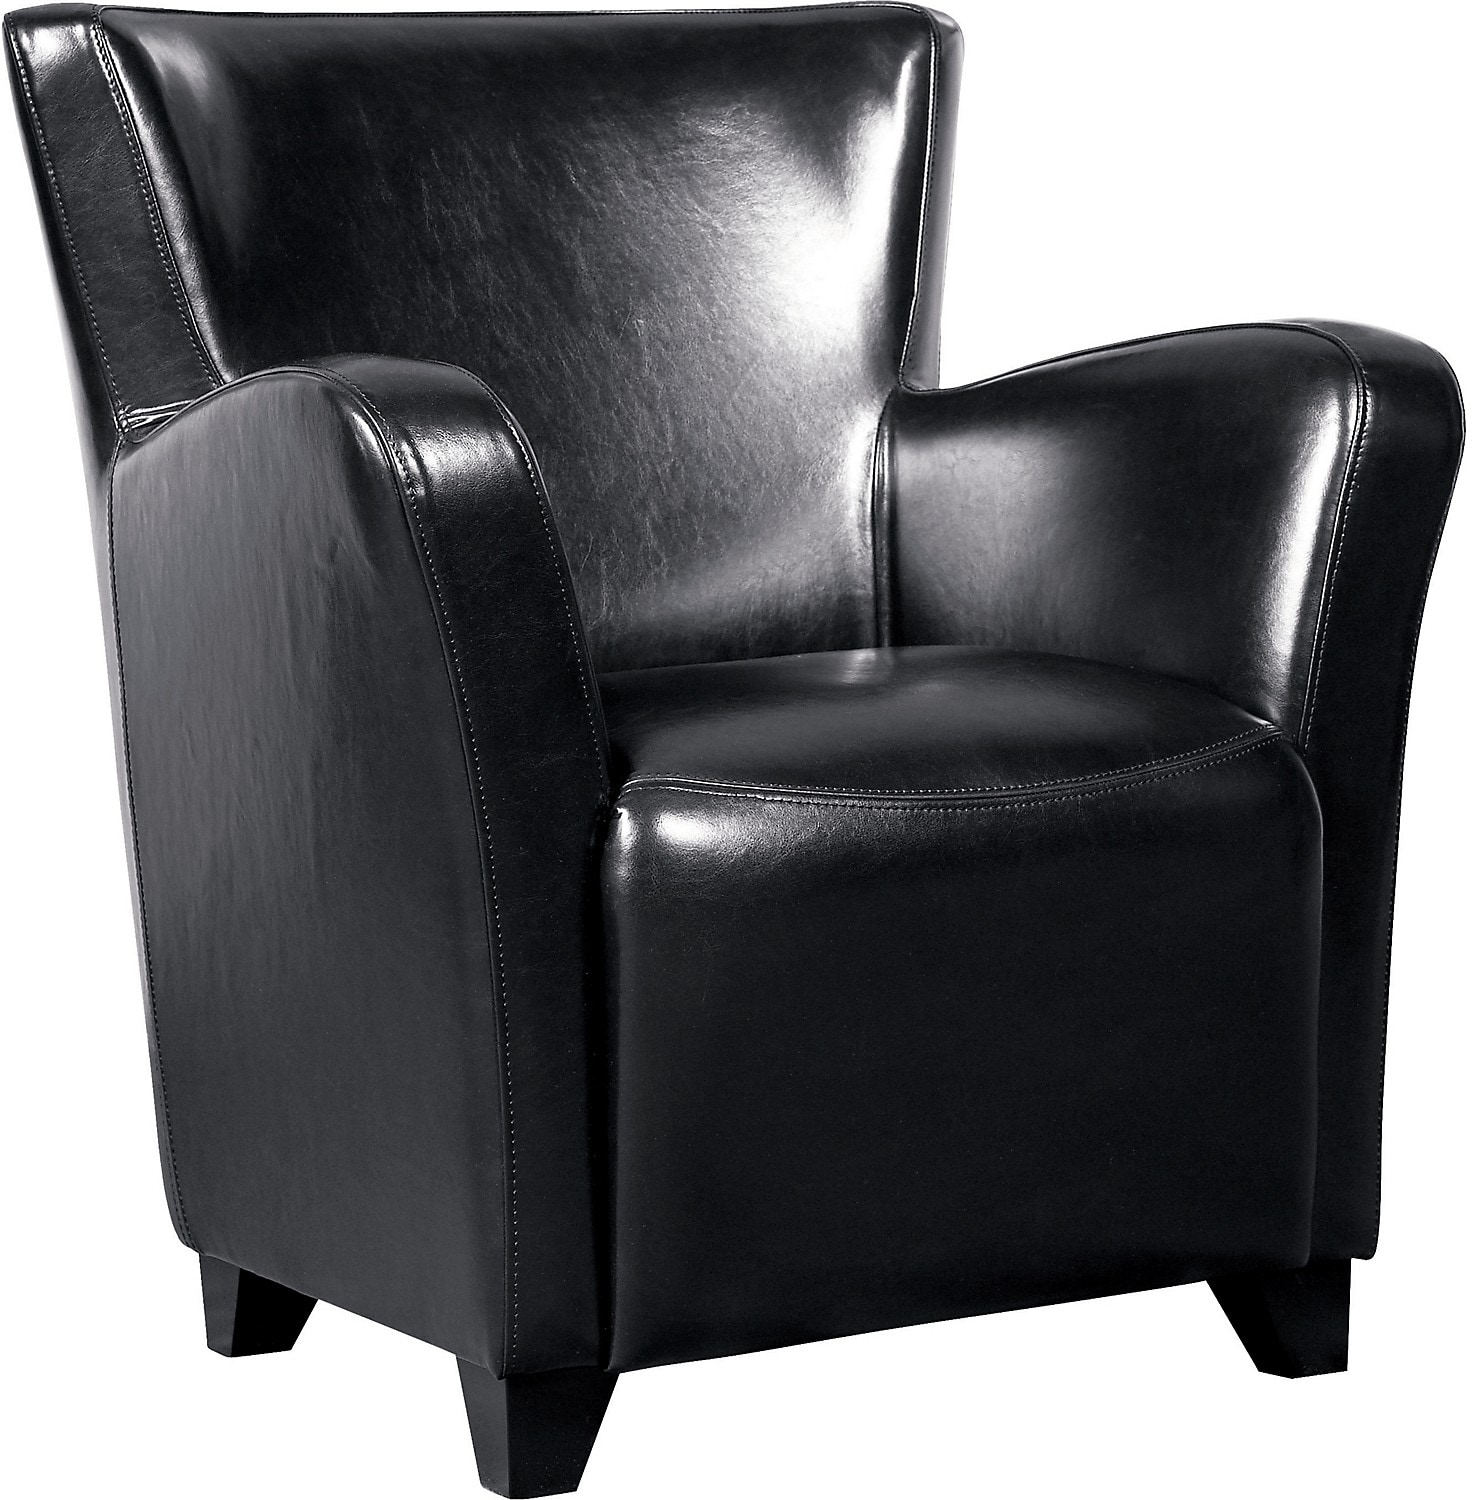 Living Room Furniture - Bonded Leather Chair - Black